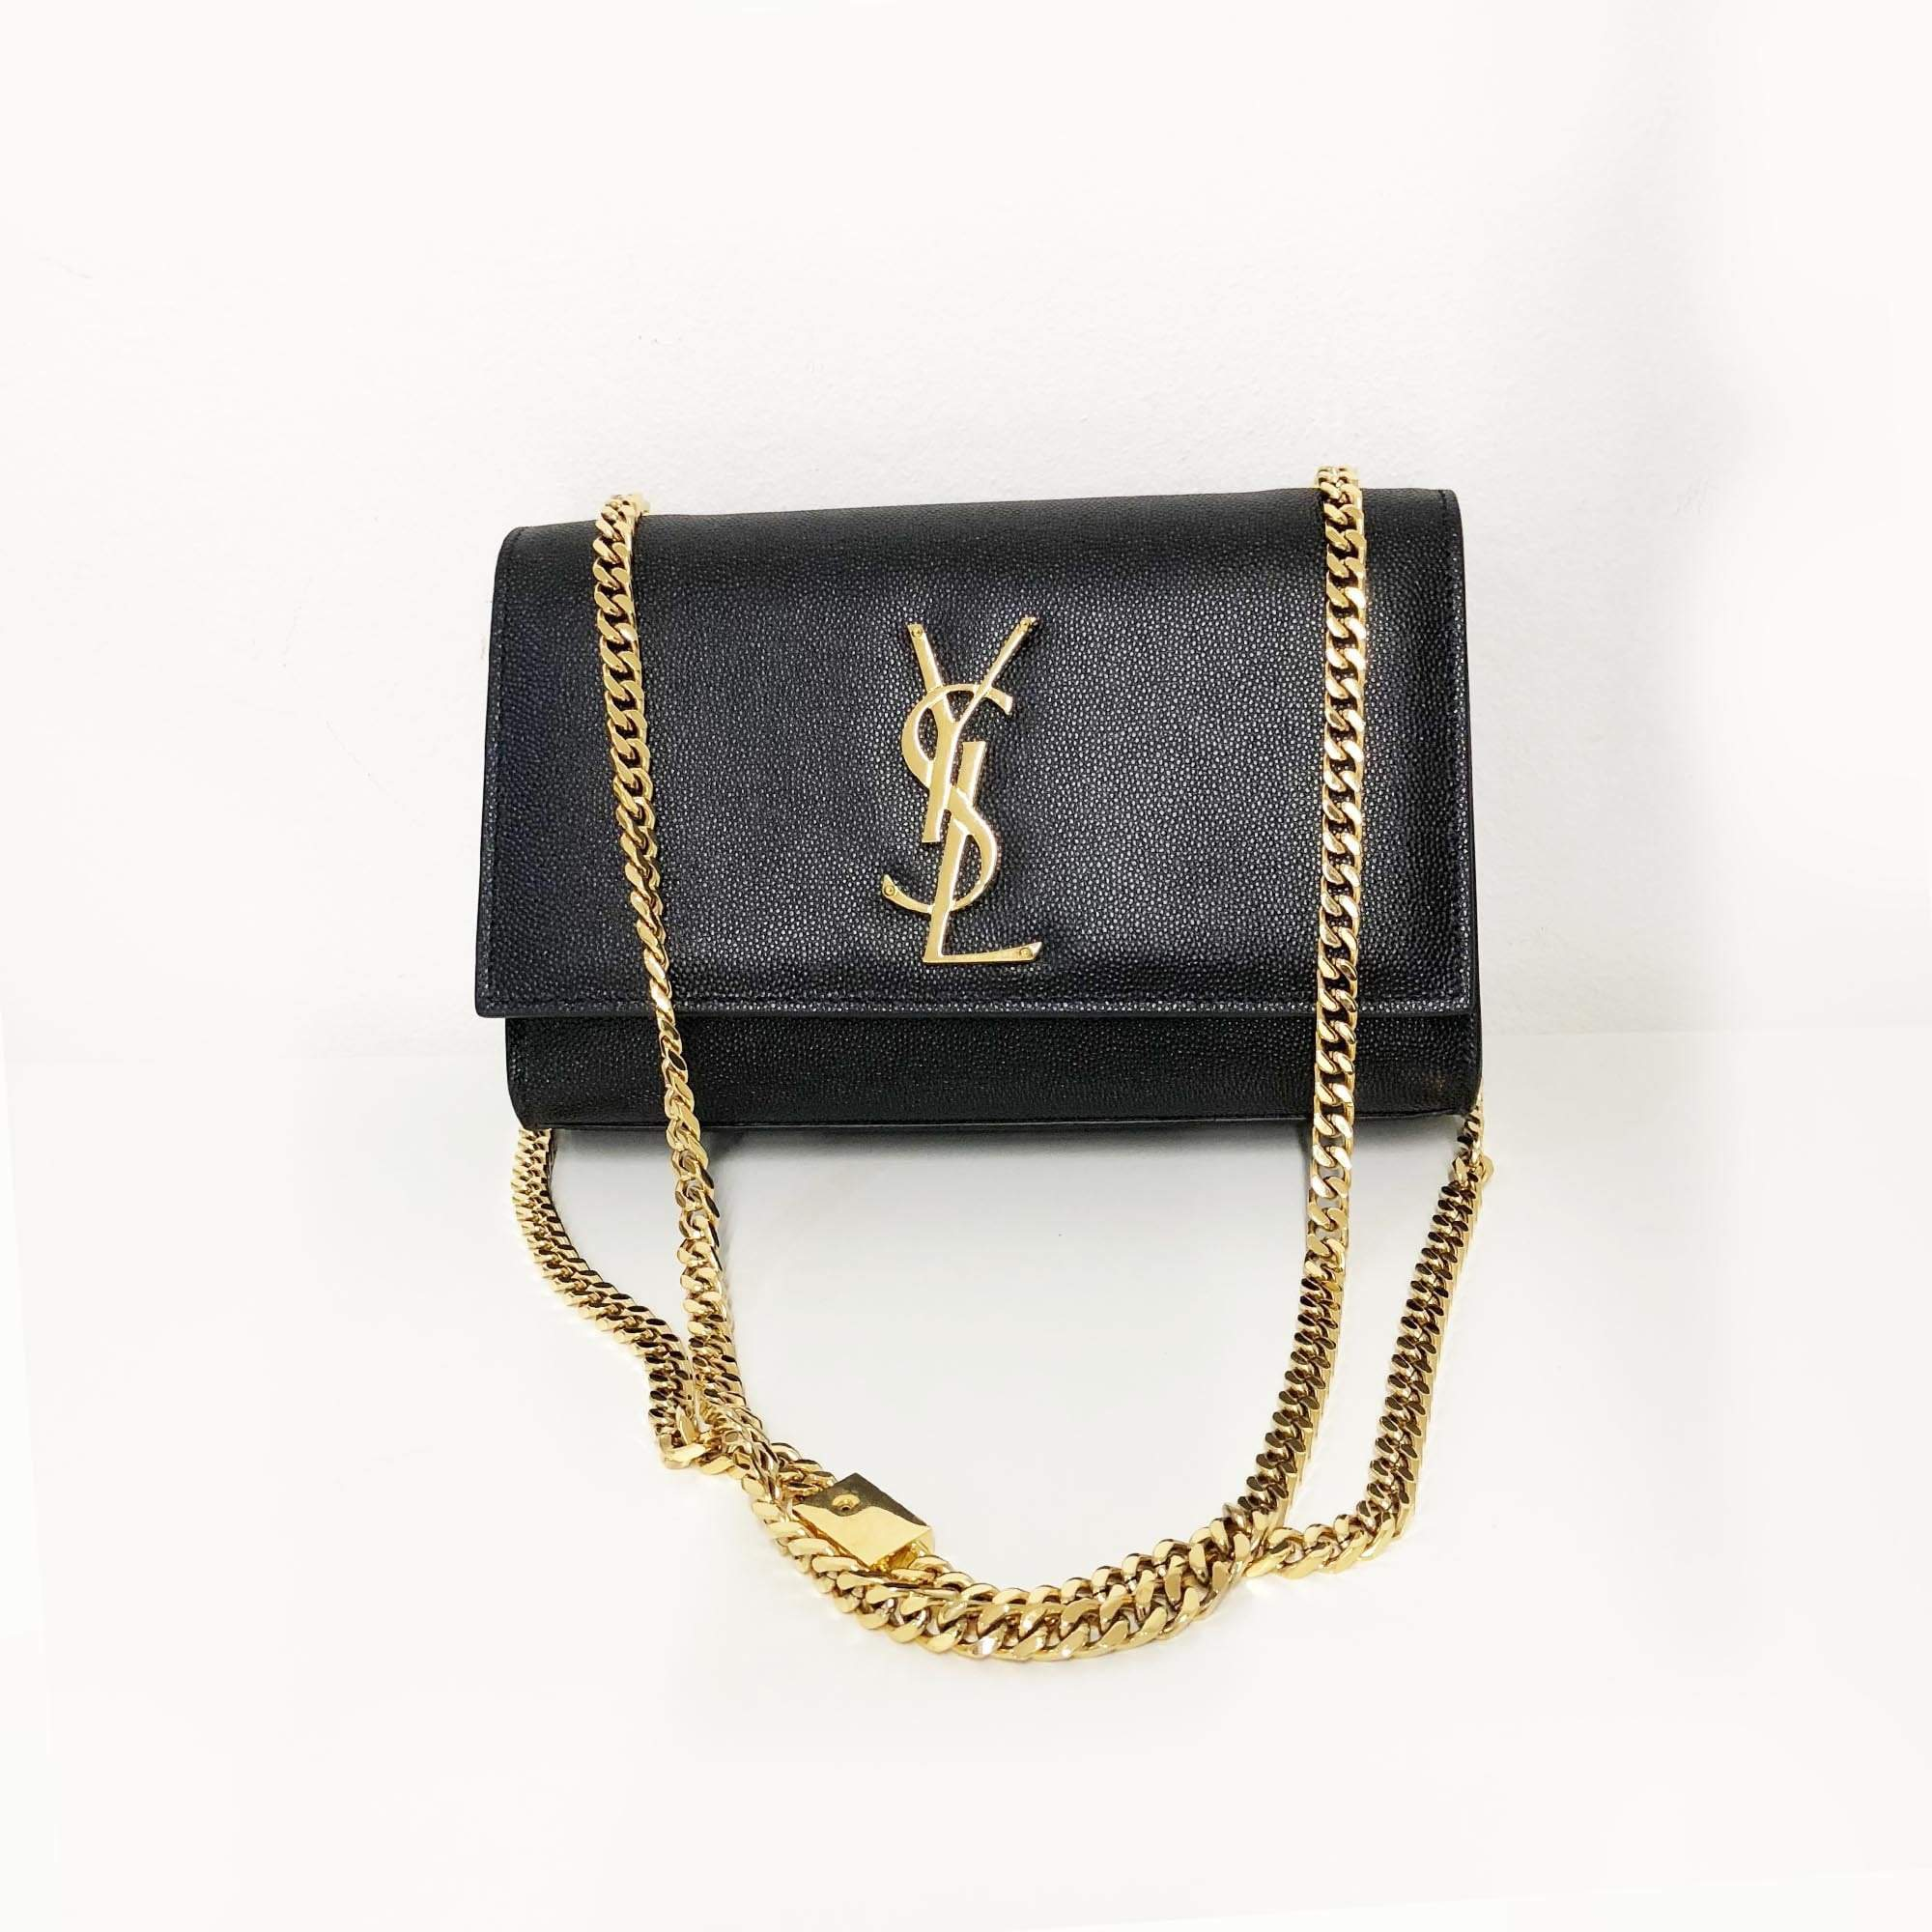 41f27d9a1a Yves Saint Laurent Kate Small Monogram shoulder bag Gold Hardware –  Garderobe